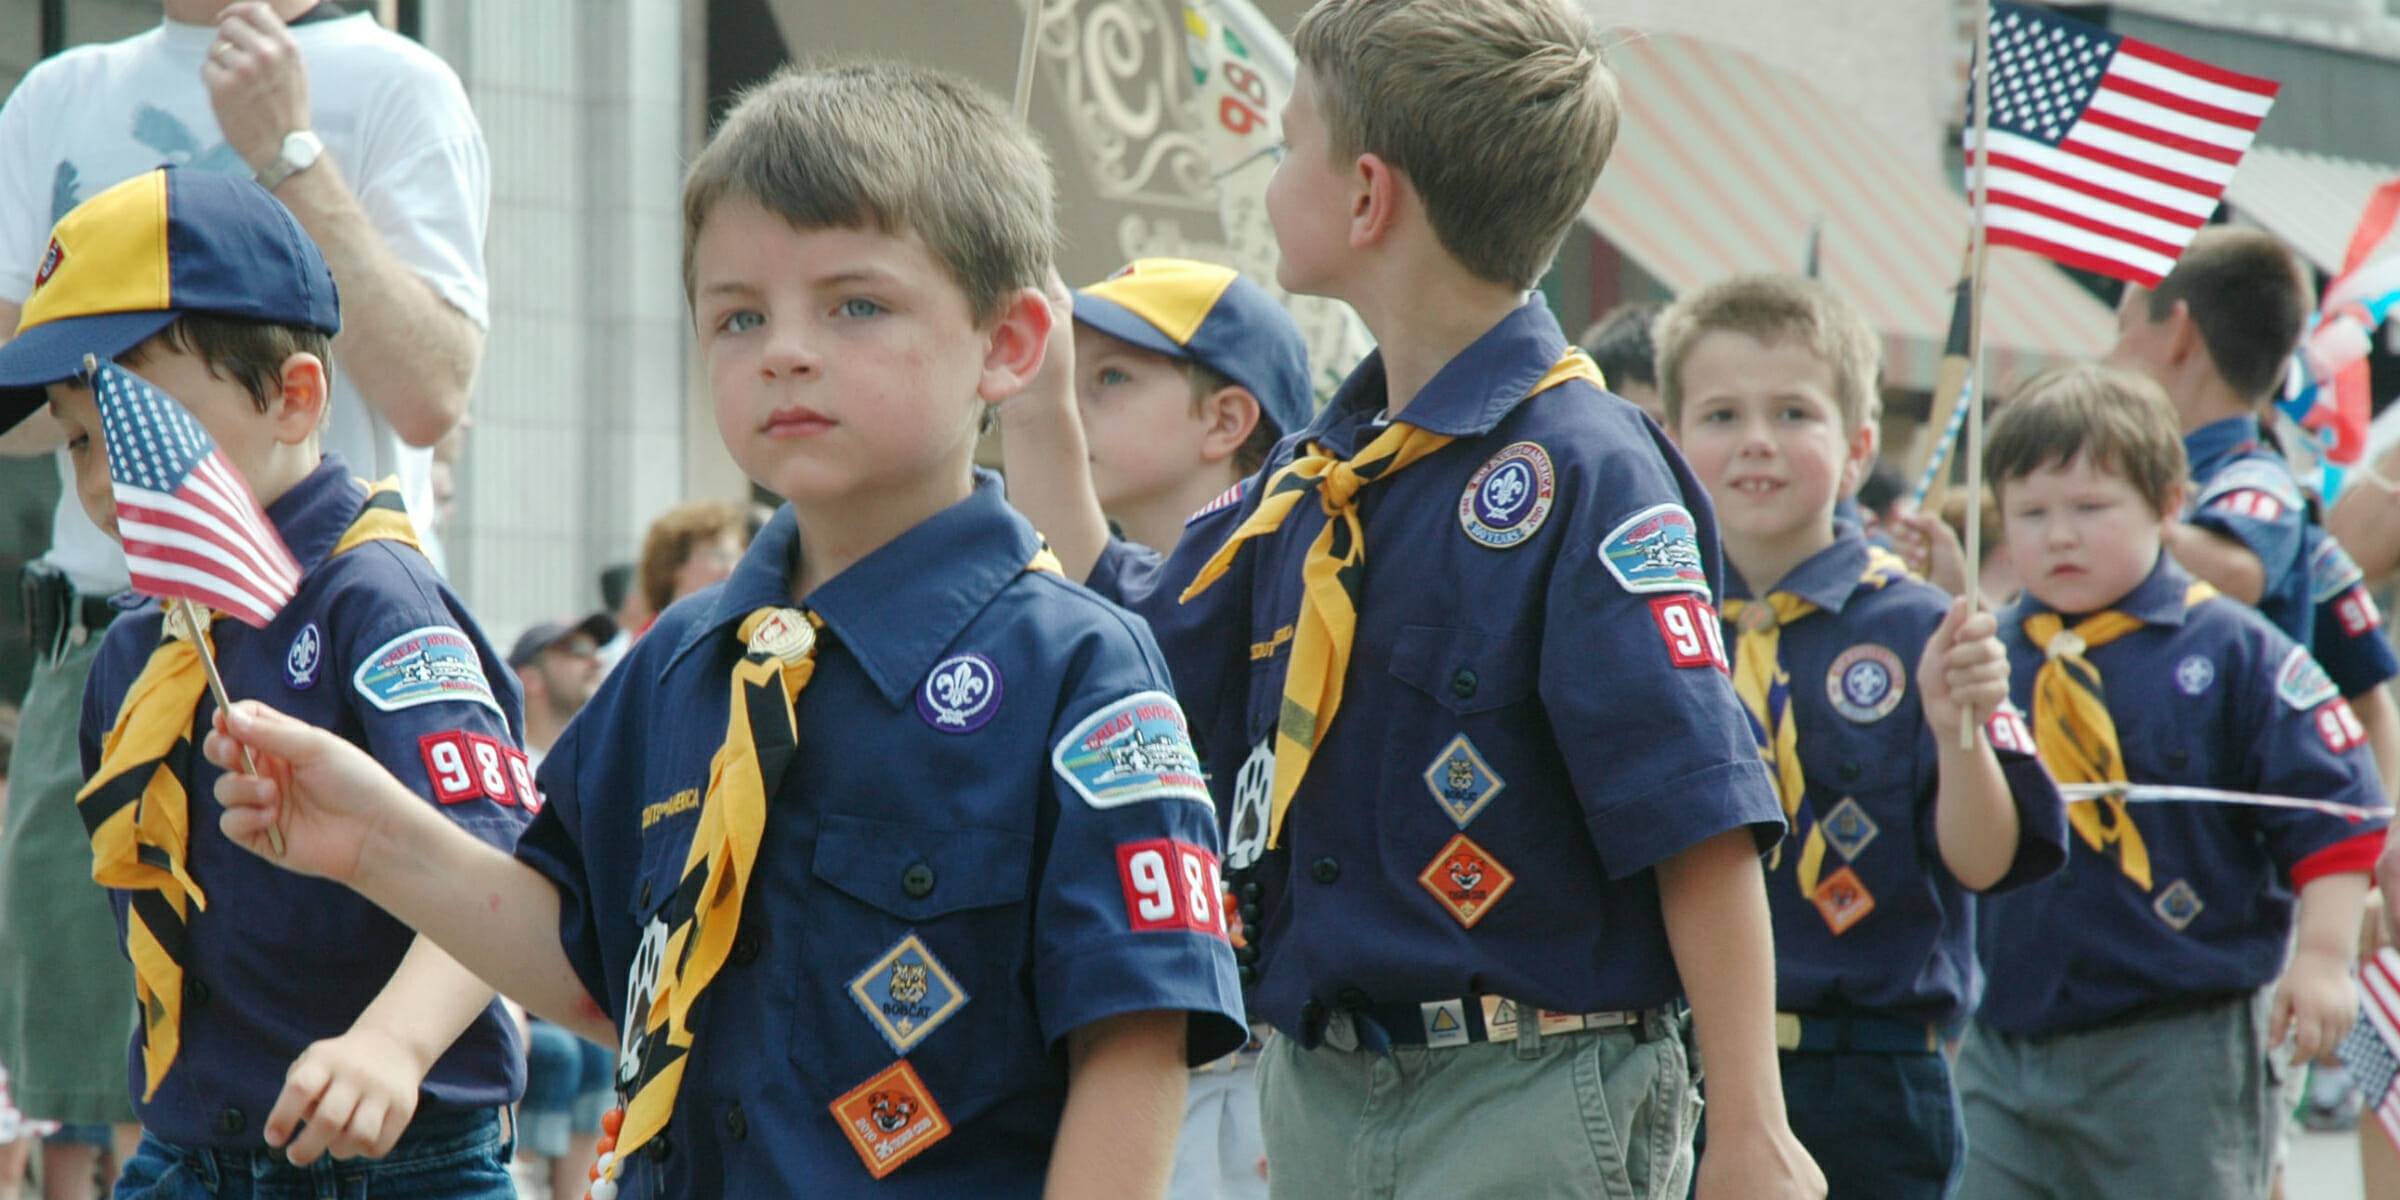 The Boy Scouts Is Changing Its Name And Conservatives Are